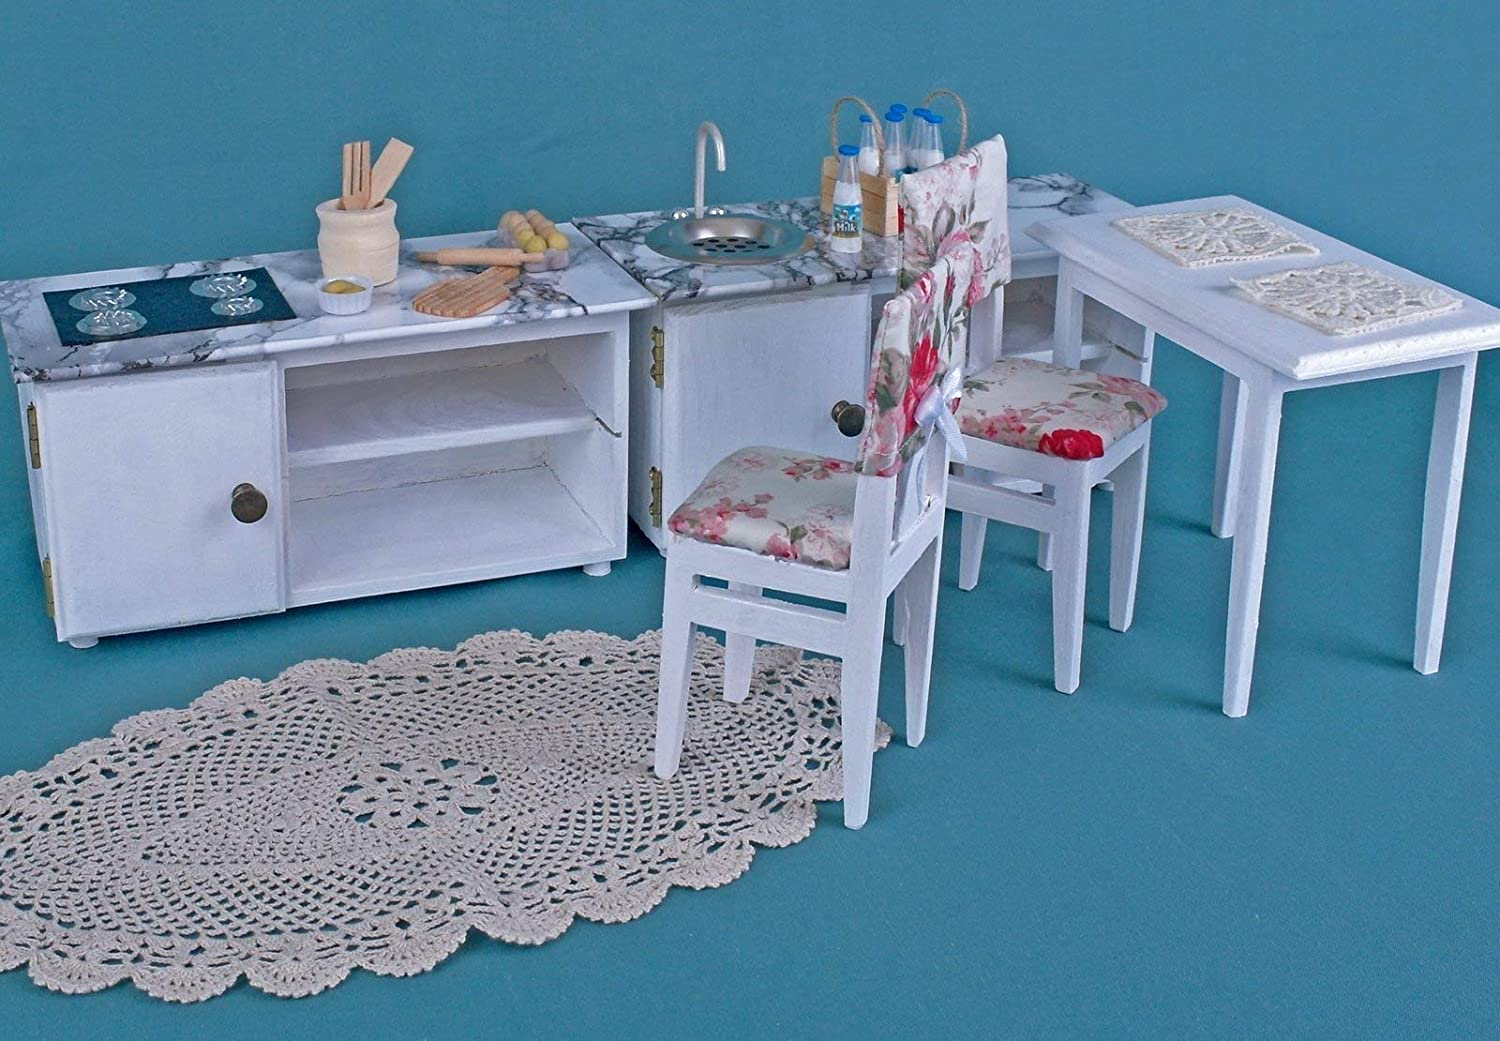 Kitchen set table chairs 2 cabinet sink hob dollshouse wooden 1:6 play-scale for Barbie Blythe furniture dolls 12 inch miniature accessories